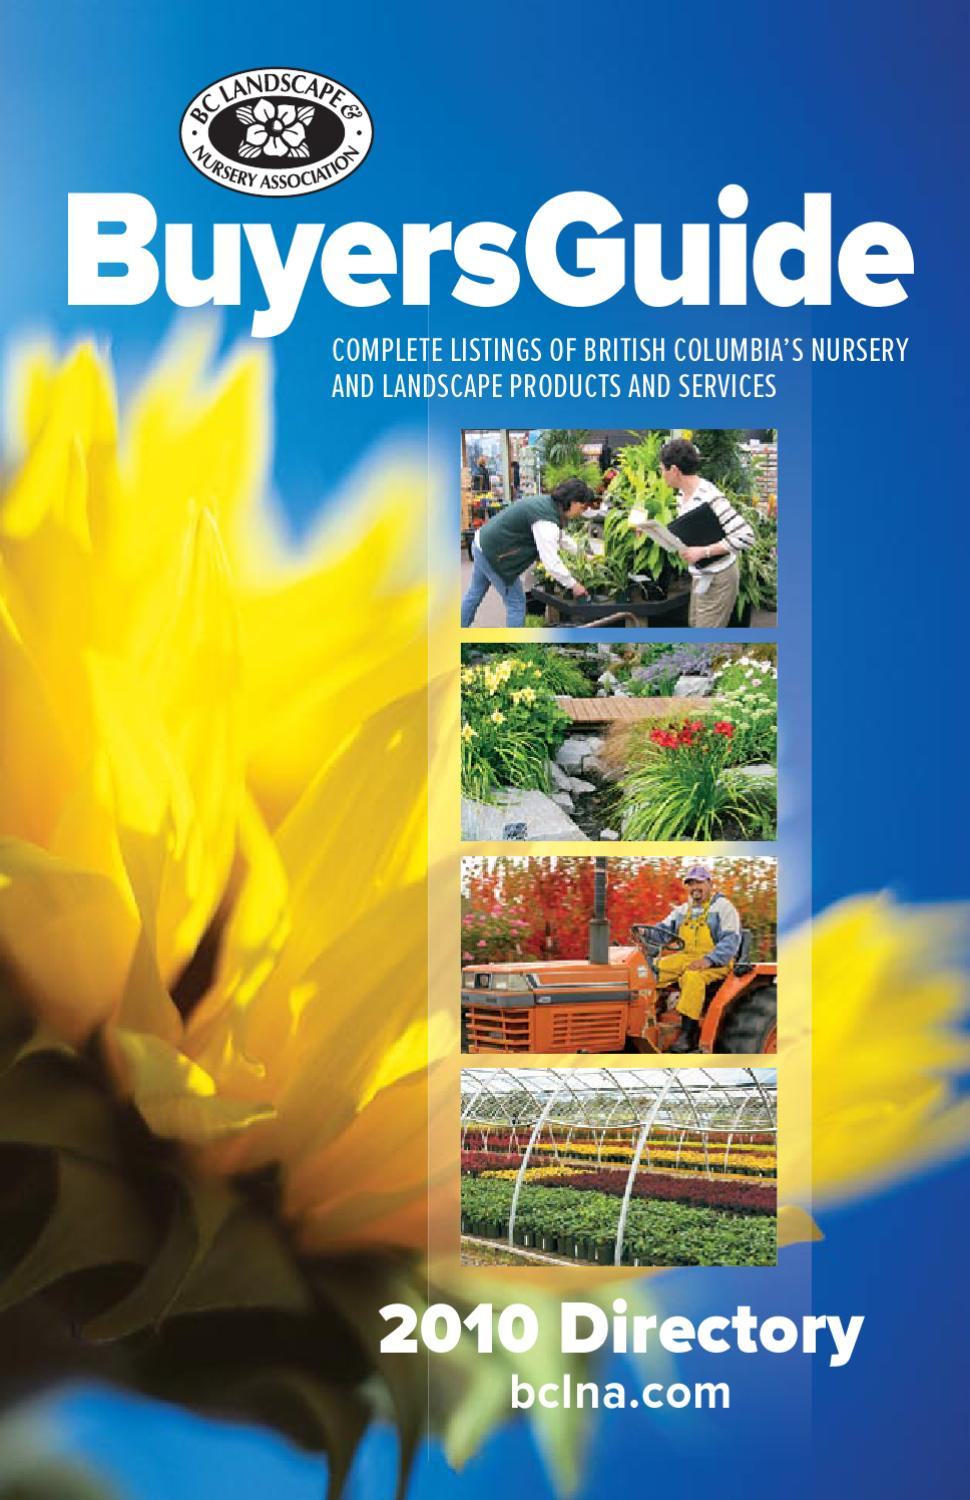 d4c0e36971d BCLNA Buyers Guide 2010 by BC Landscape & Nursery Association - issuu